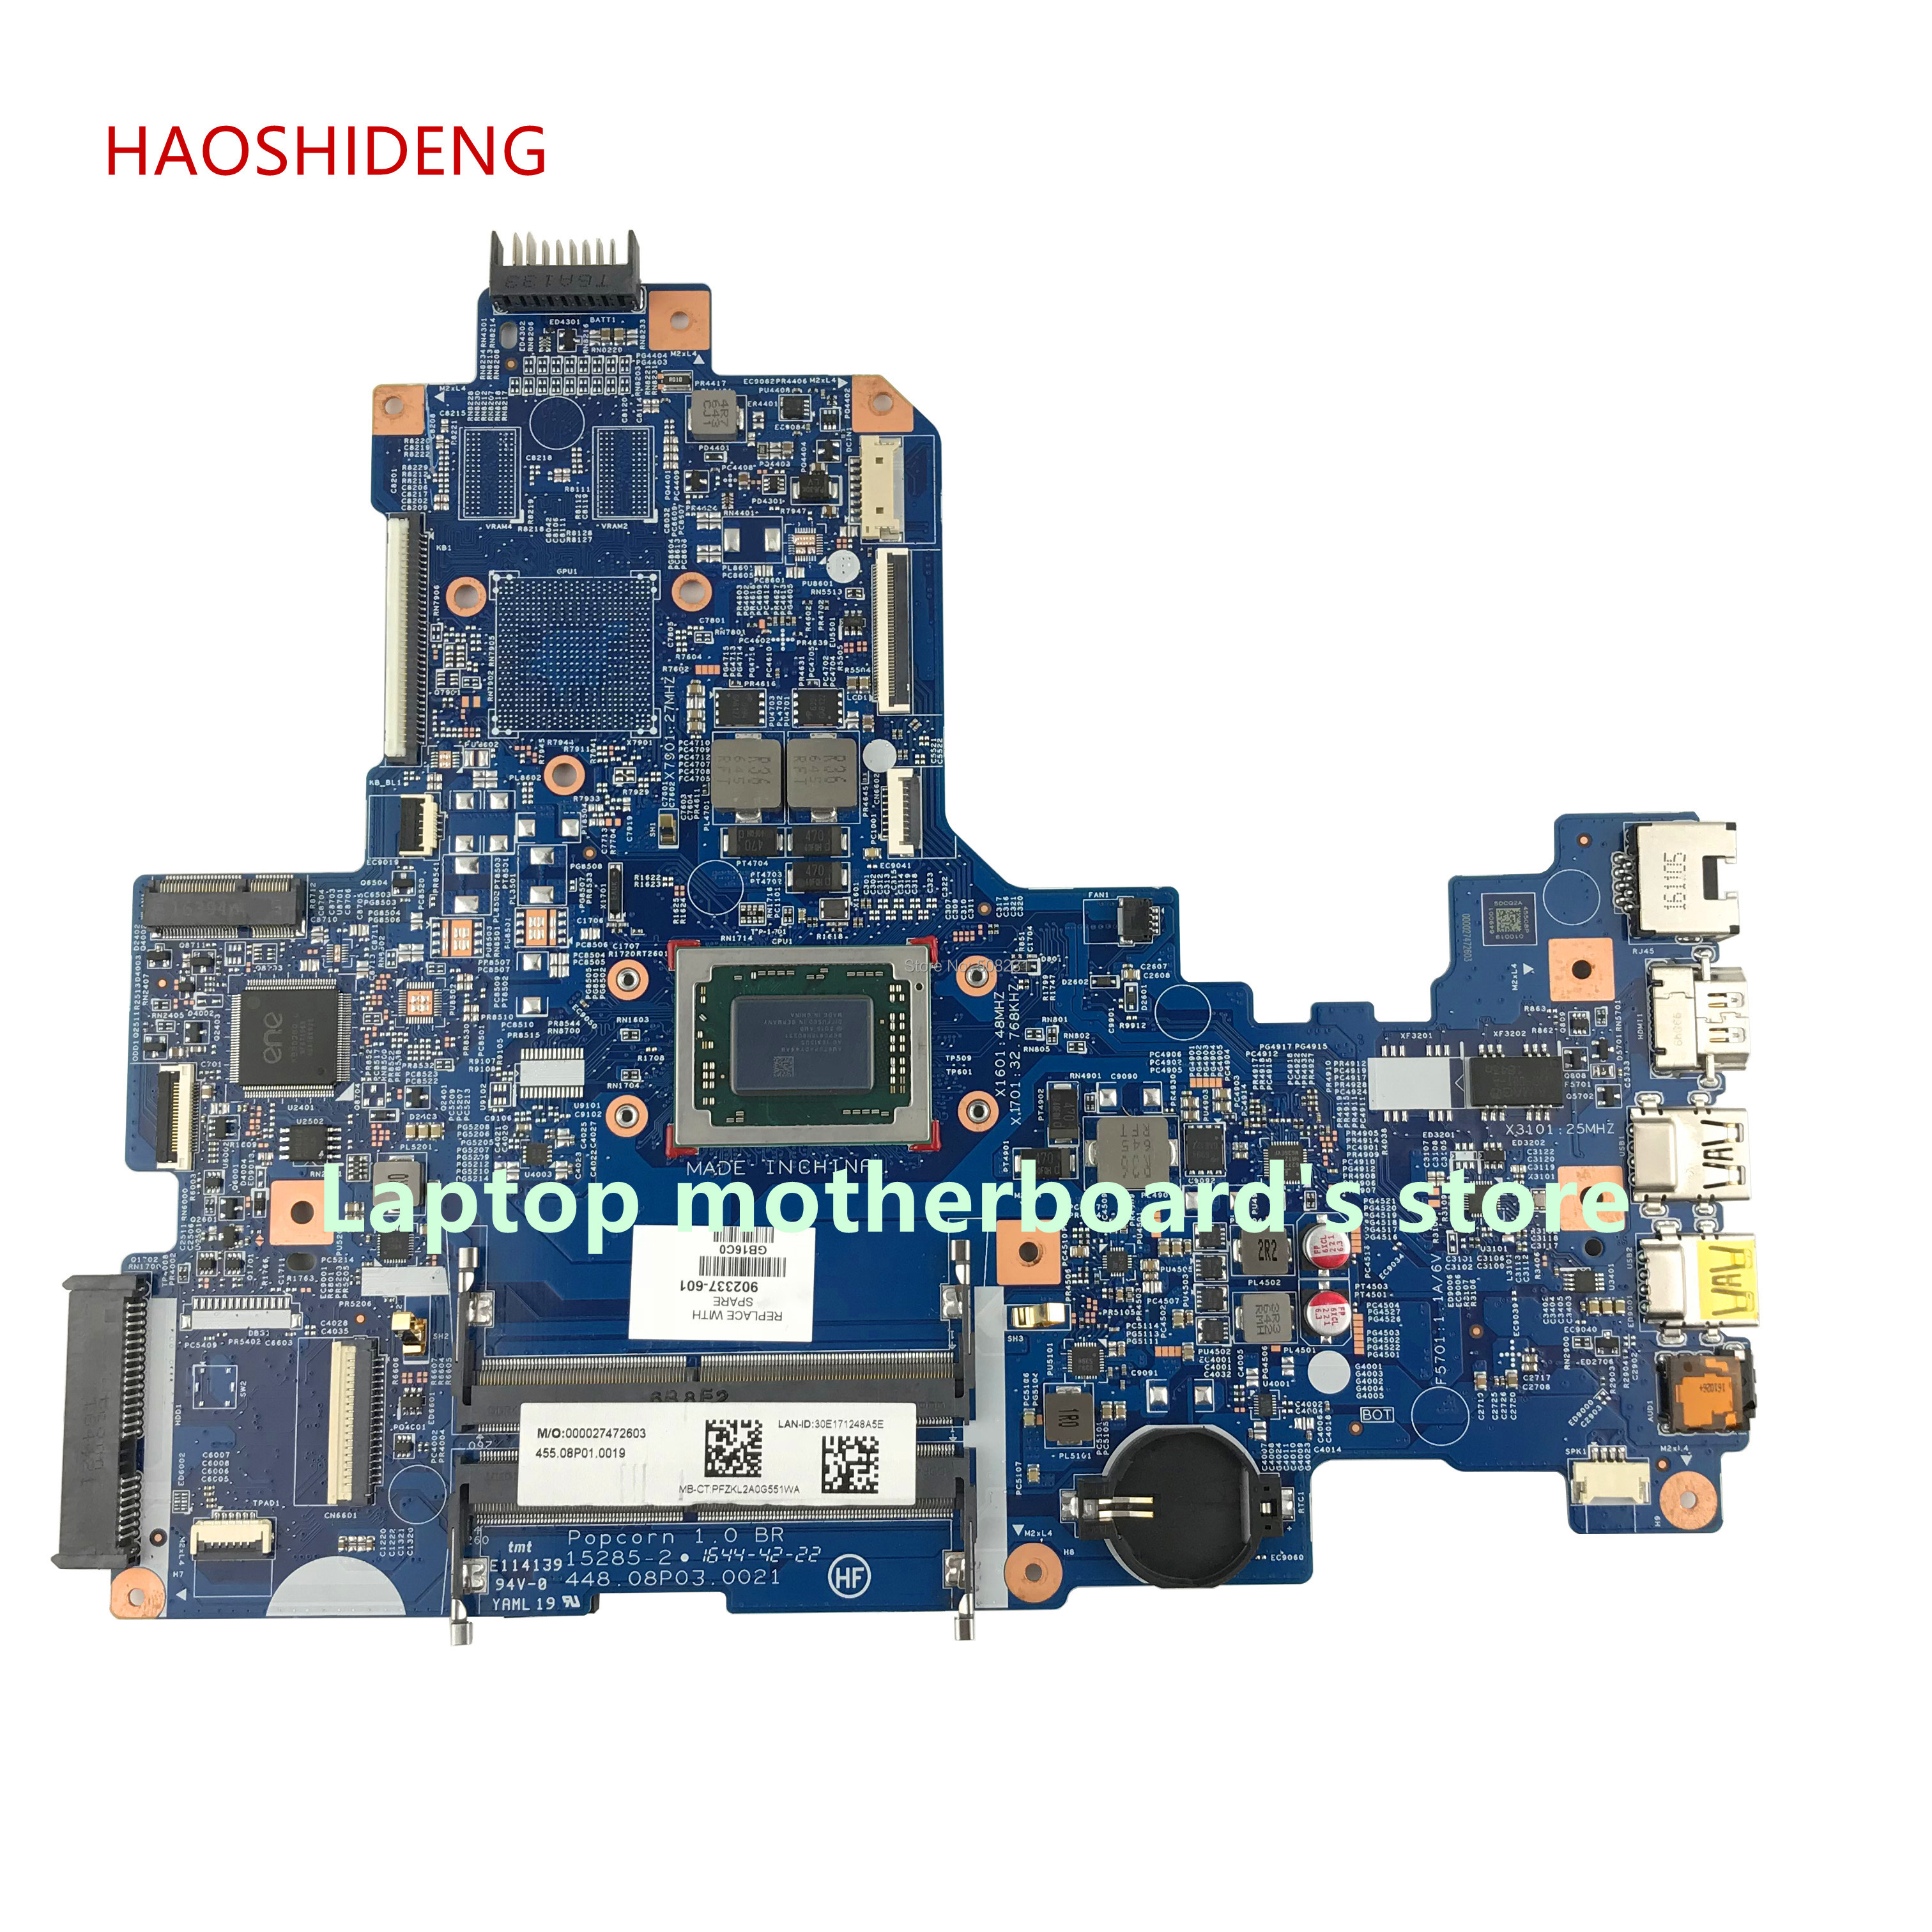 HAOSHIDENG 902337-601 448.08P03.0021 for HP NOTEBOOK 17-Y 17Z-Y 17-Y007CY Notebook motherboard with A12-9700P fully Tested haoshideng 809985 601 809985 001 laptop motherboard for hp pavilion 17 p 17z p notebook day21amb6d0 a76m a10 7300 fully tested